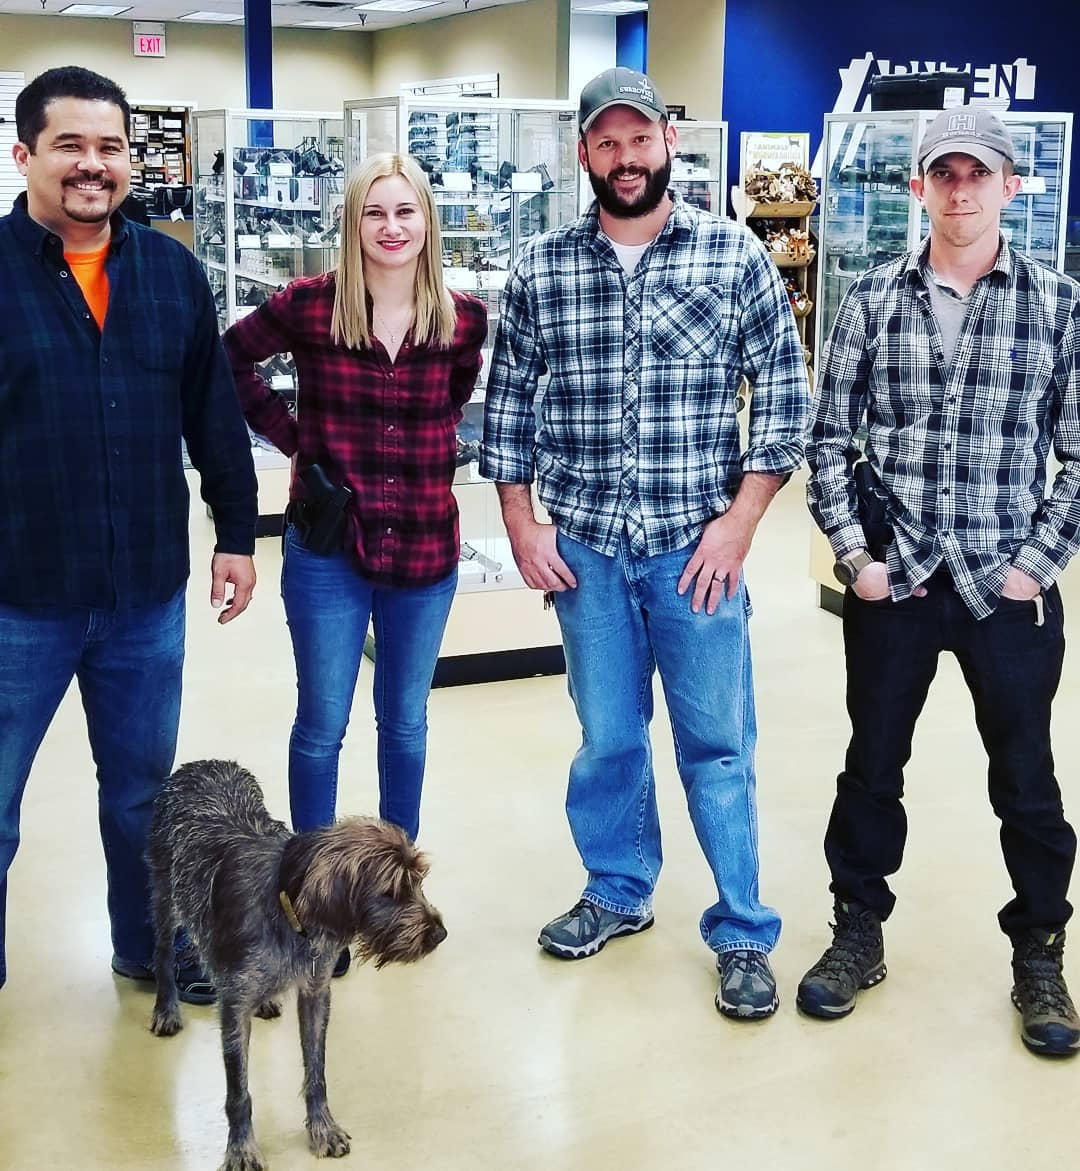 New And Used Guns For Sale Online Gun Shop Near Minneapolis Mn Lobor Lb A1312 Dial Swarovski Stainless We Cant Stop Dressing Alike Plaidfordays Alldayeveryday